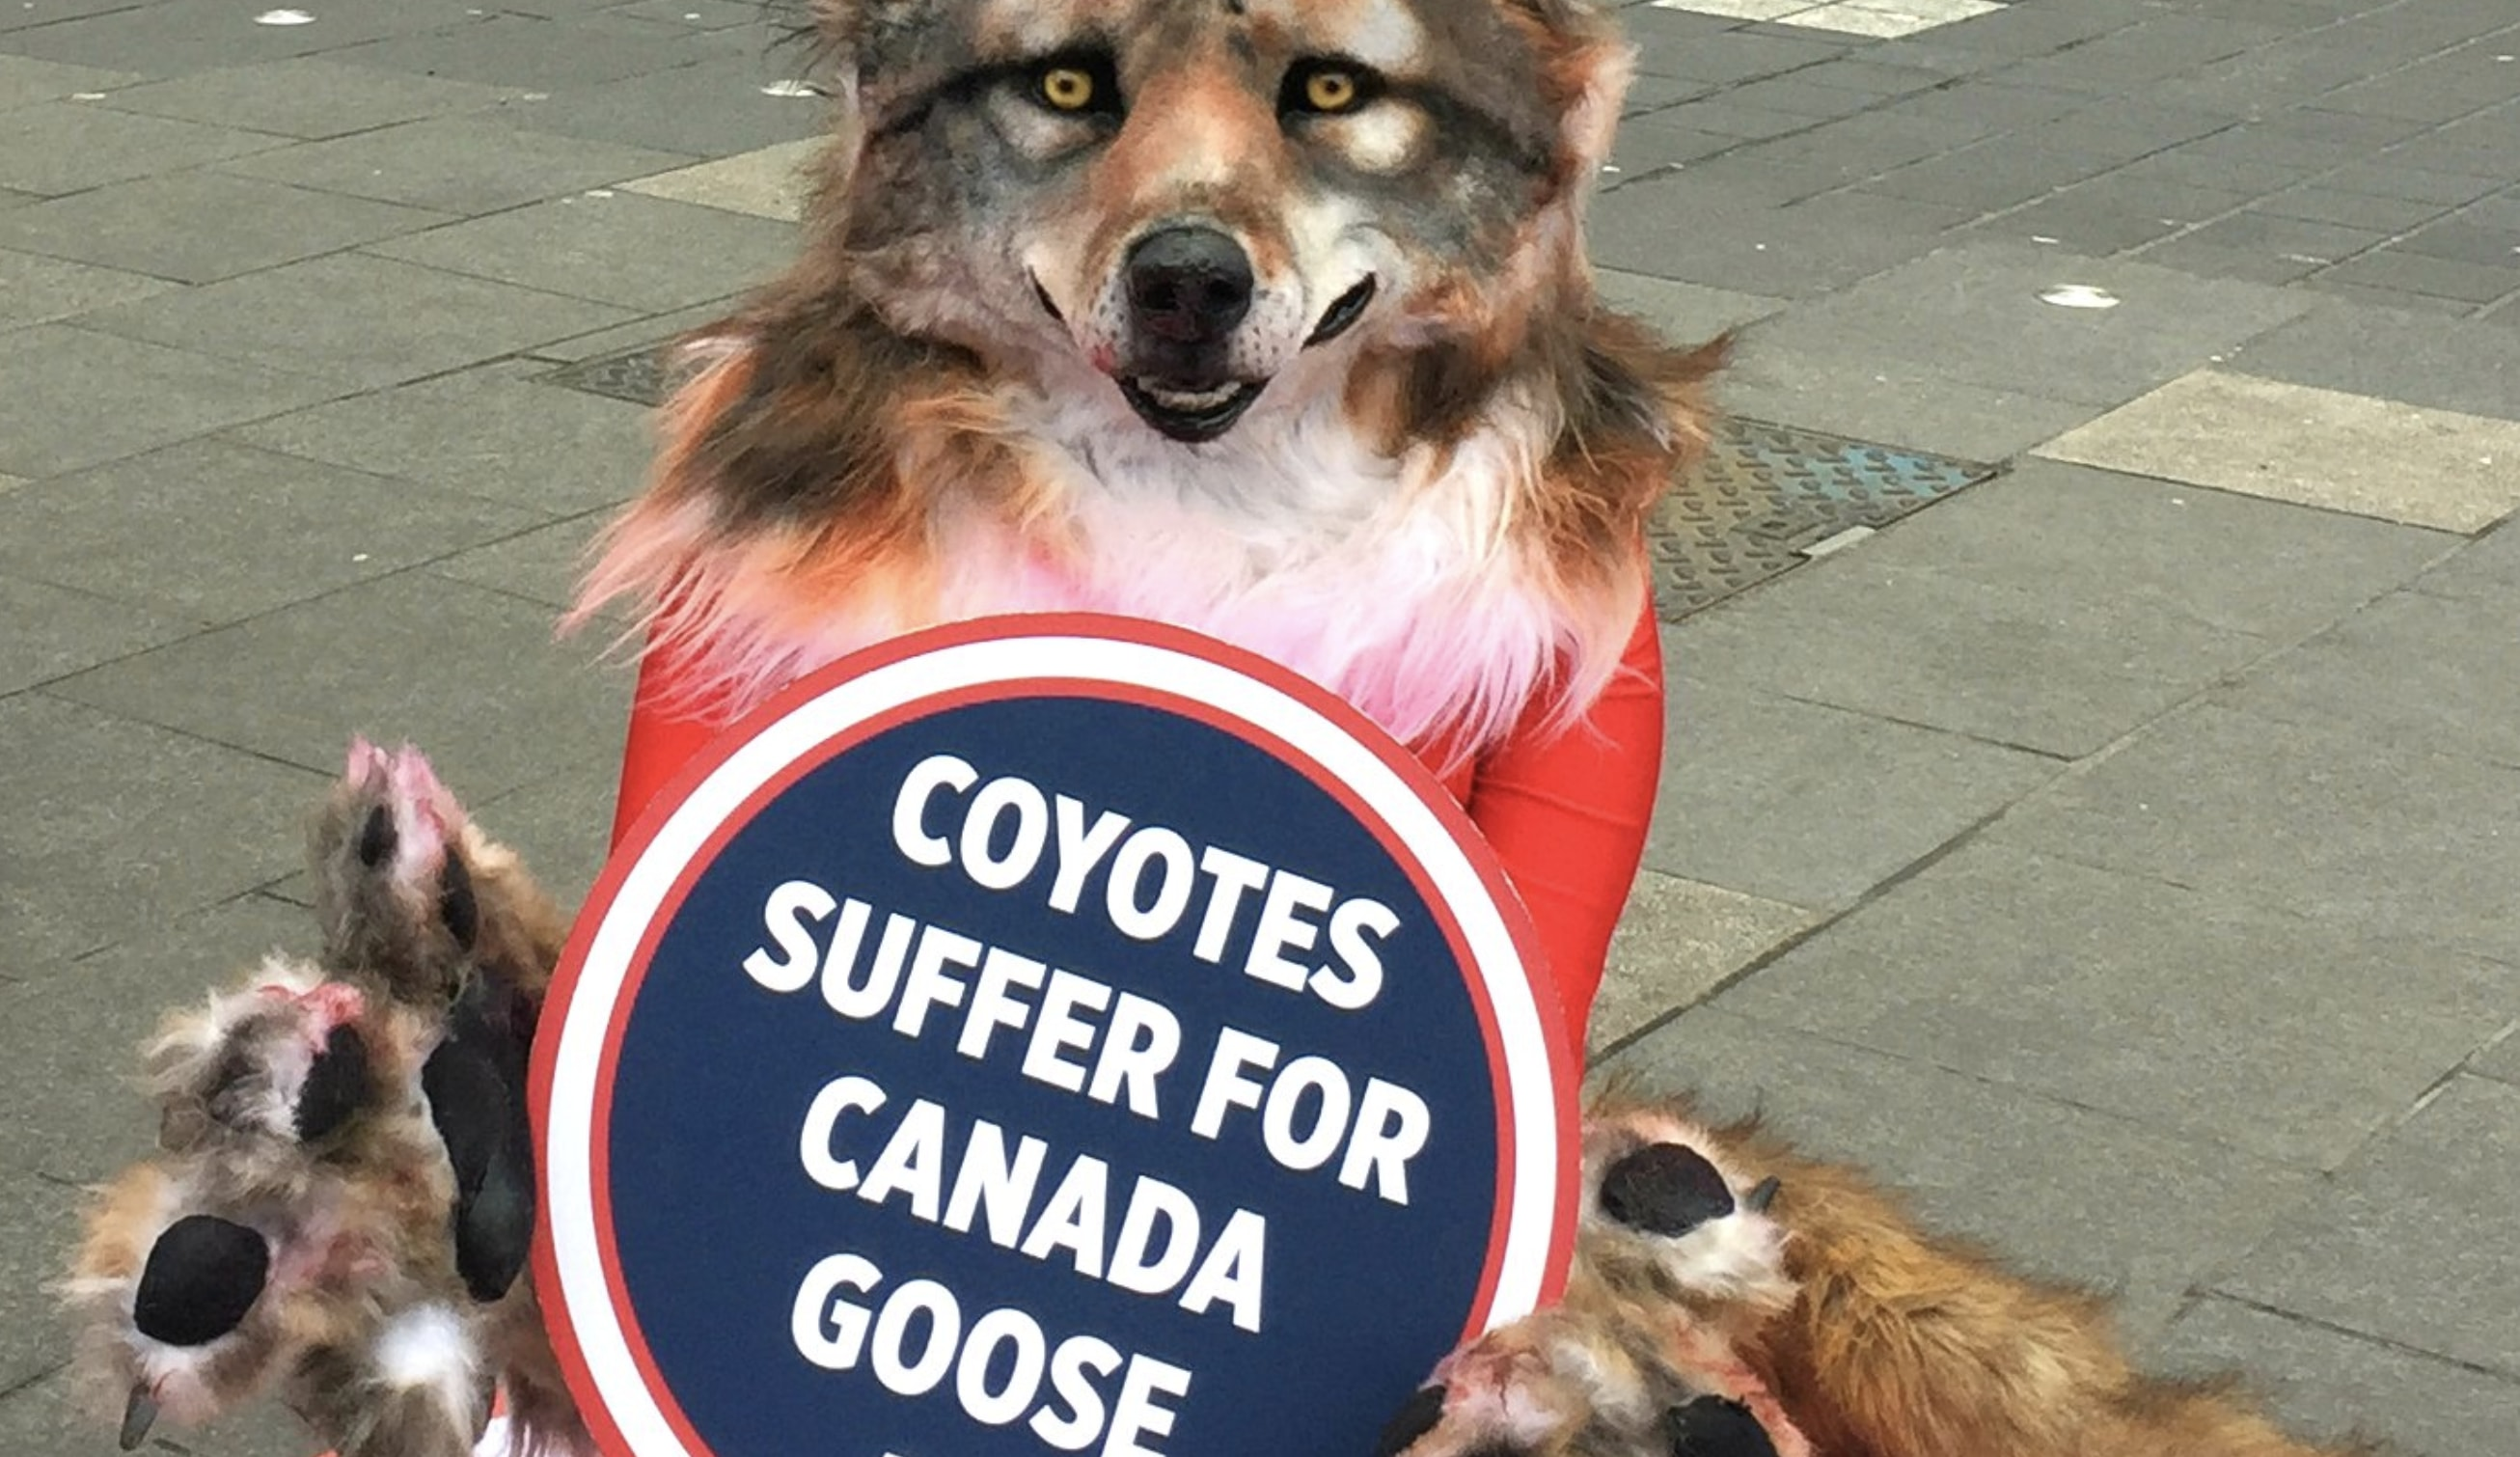 canada goose uses dog fur